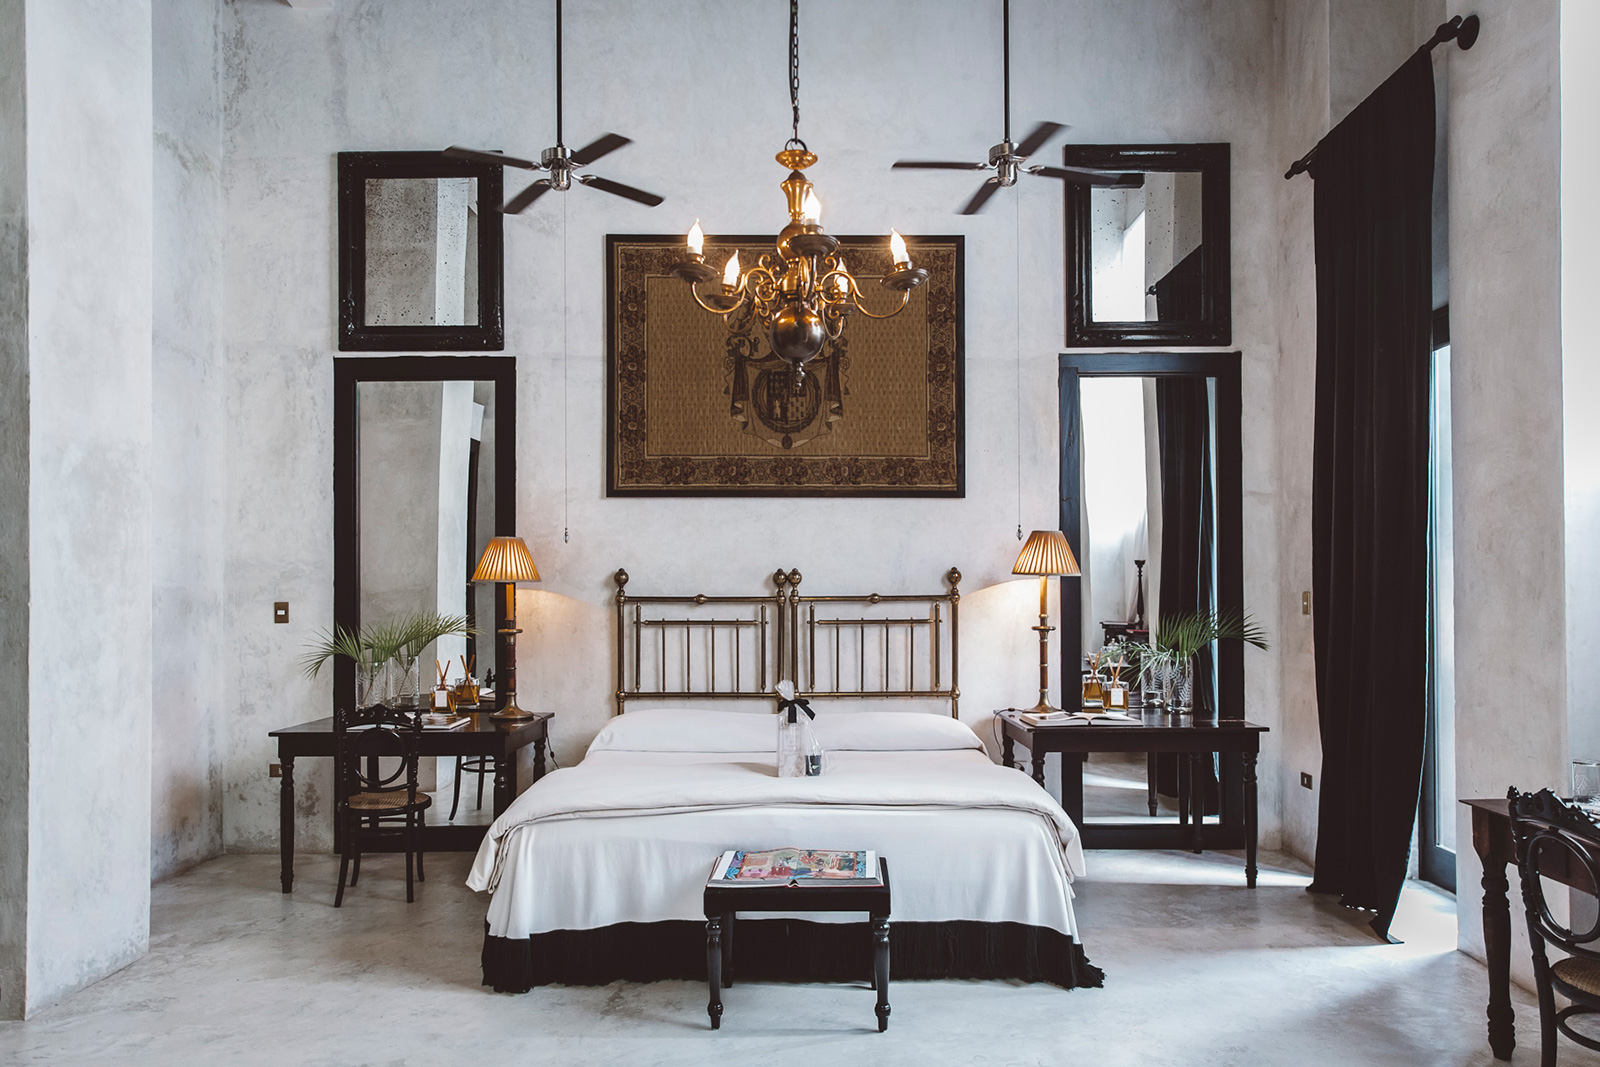 Step inside a perfumer's historic holiday home in Valladolid, Mexico